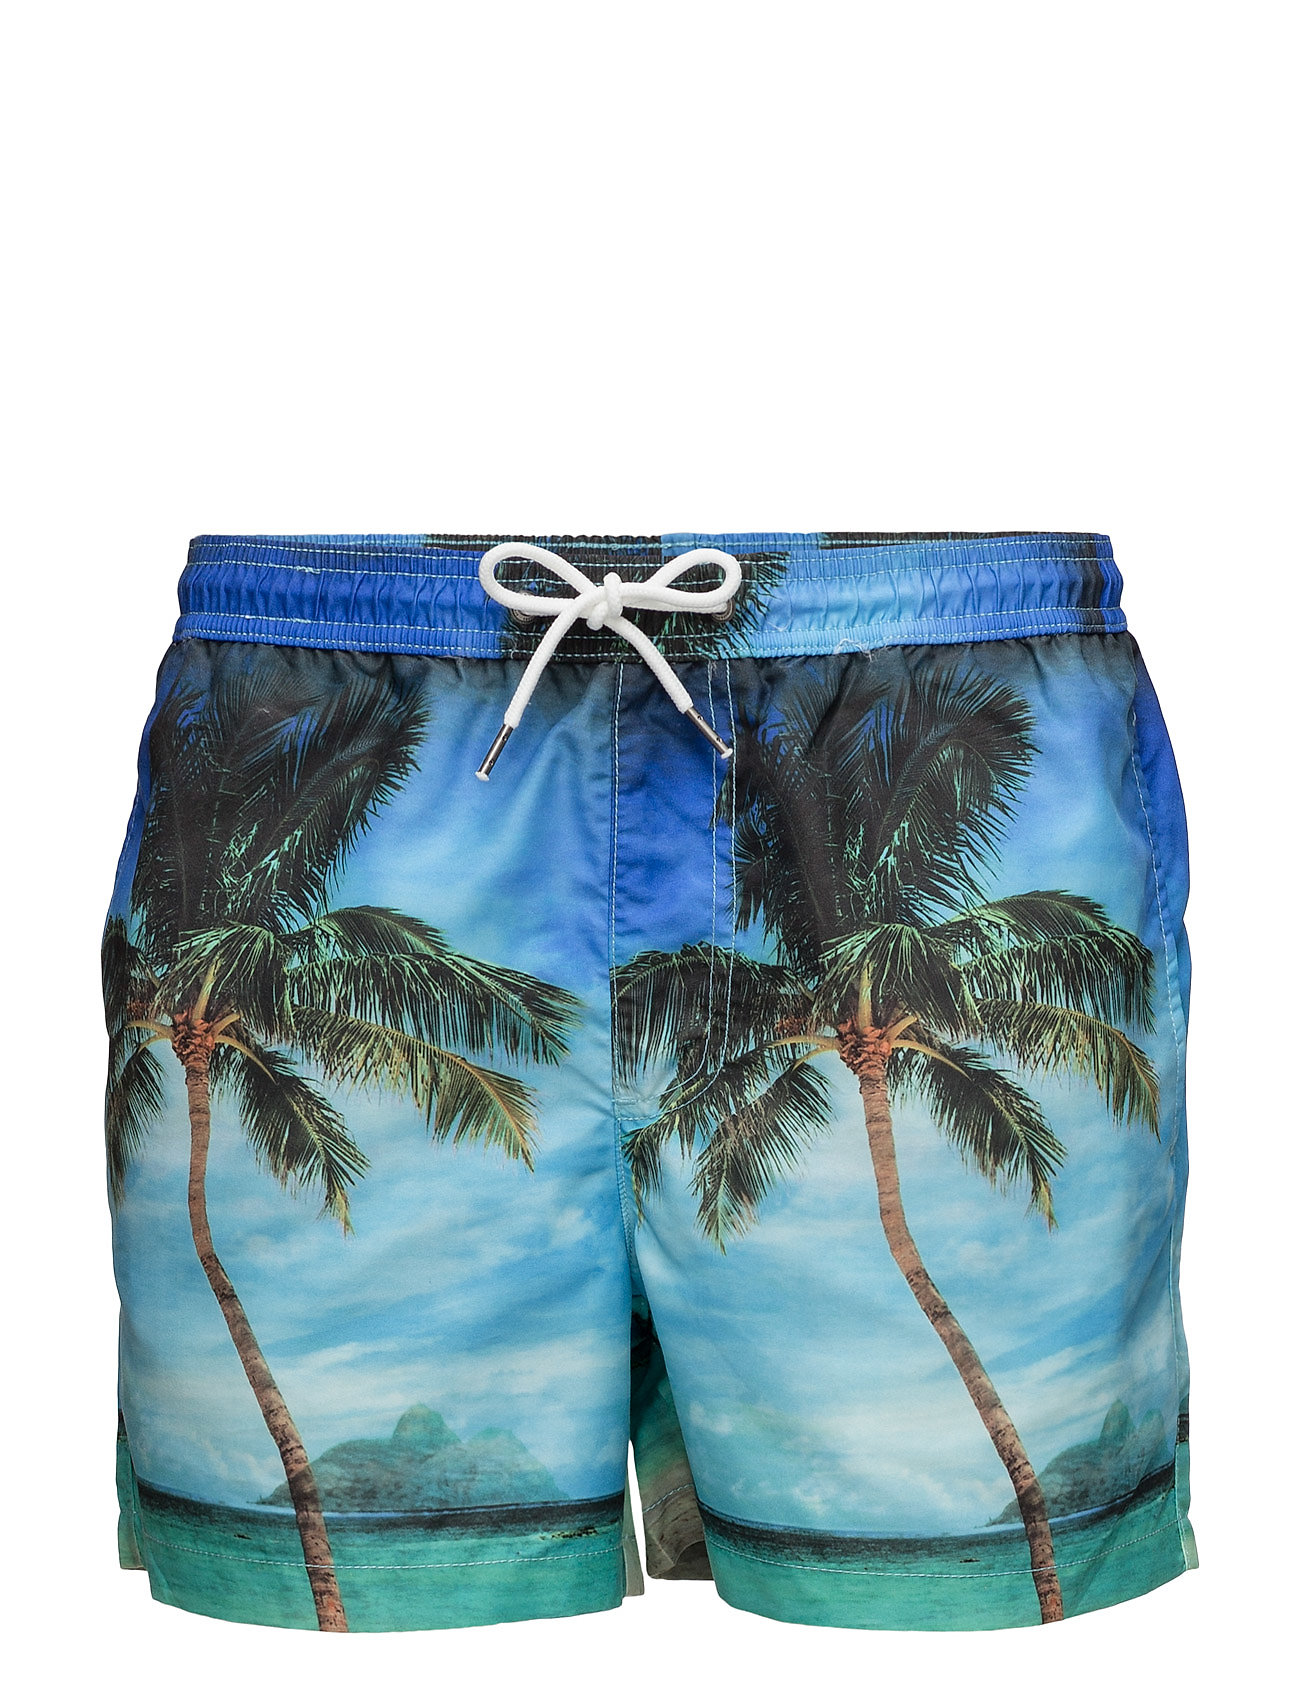 Jjisunset Swim Shorts Sublimation Ww Jack & Jones Badetøj til Mænd i Navy Blazer